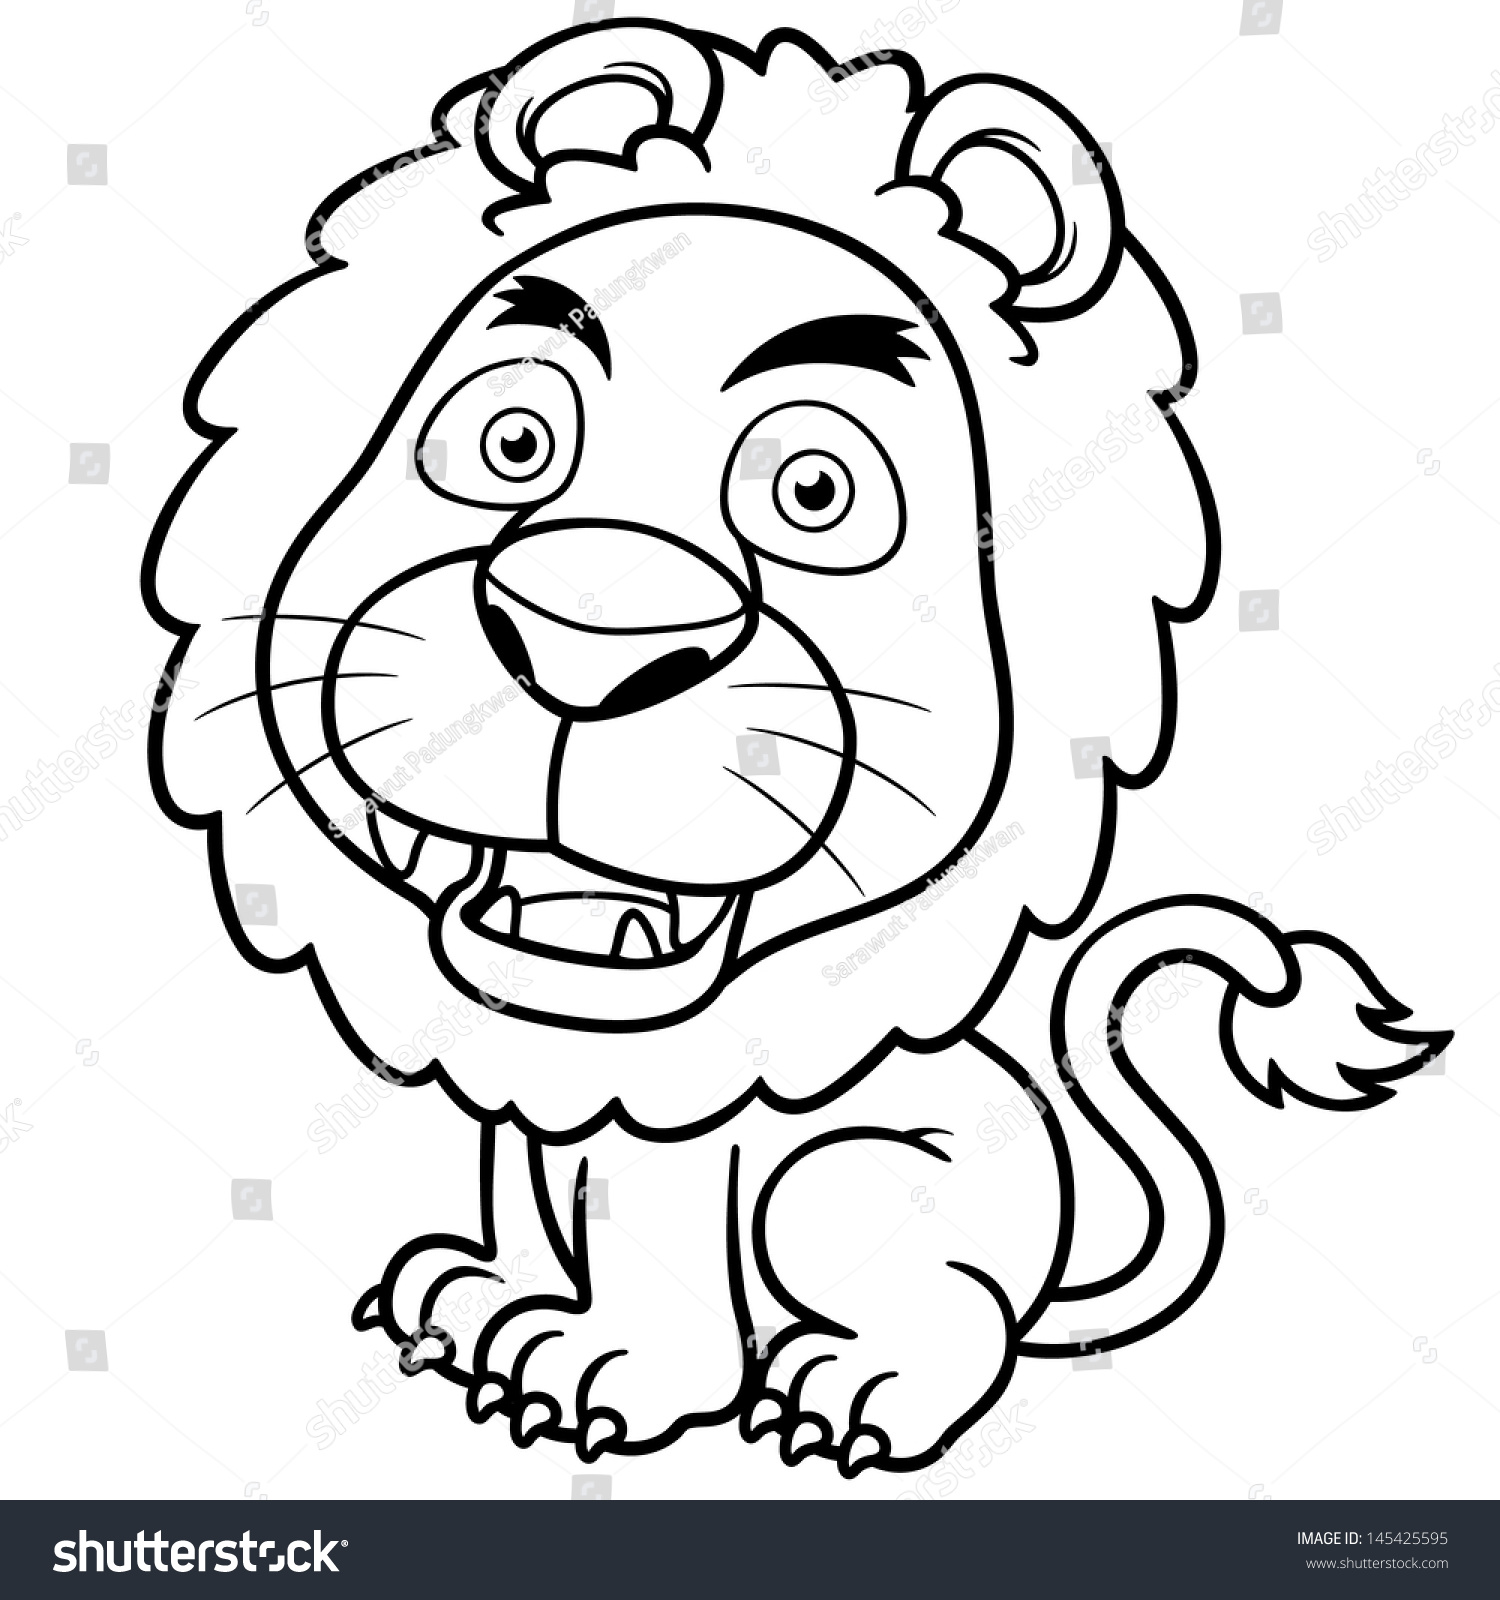 vector illustration lion cartoon coloring book stock vector - Cartoon Colouring In Pictures